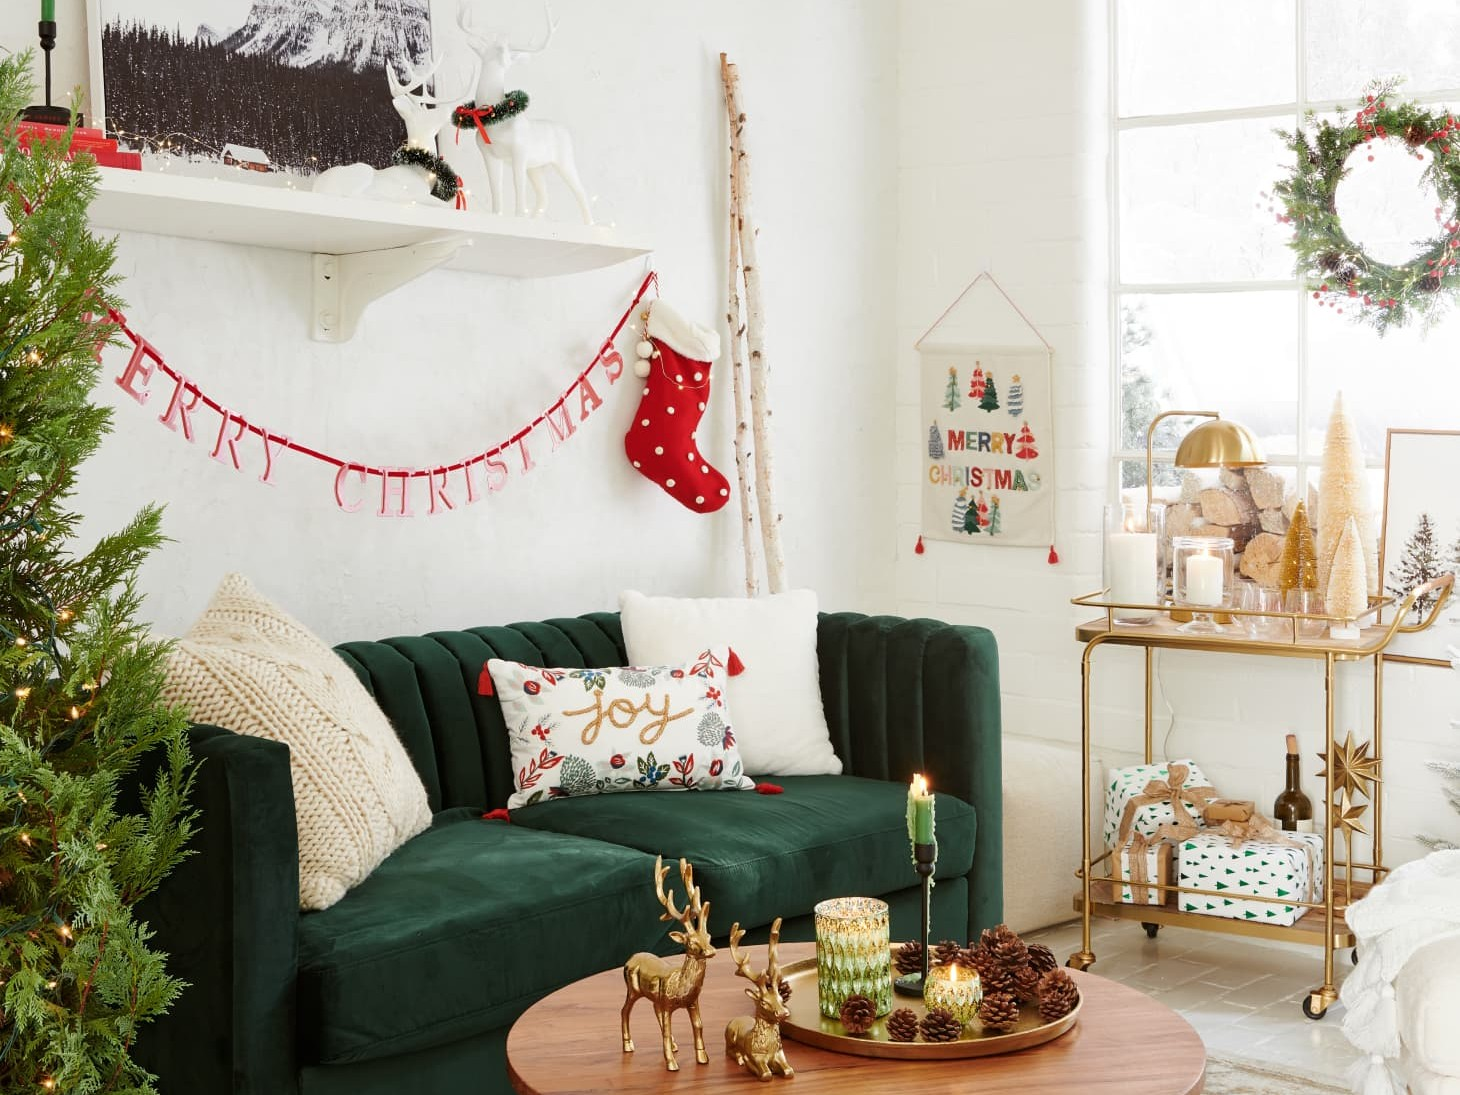 Best Target Holiday Décor Picks To Deck Your Halls Everywhere Else Sheknows